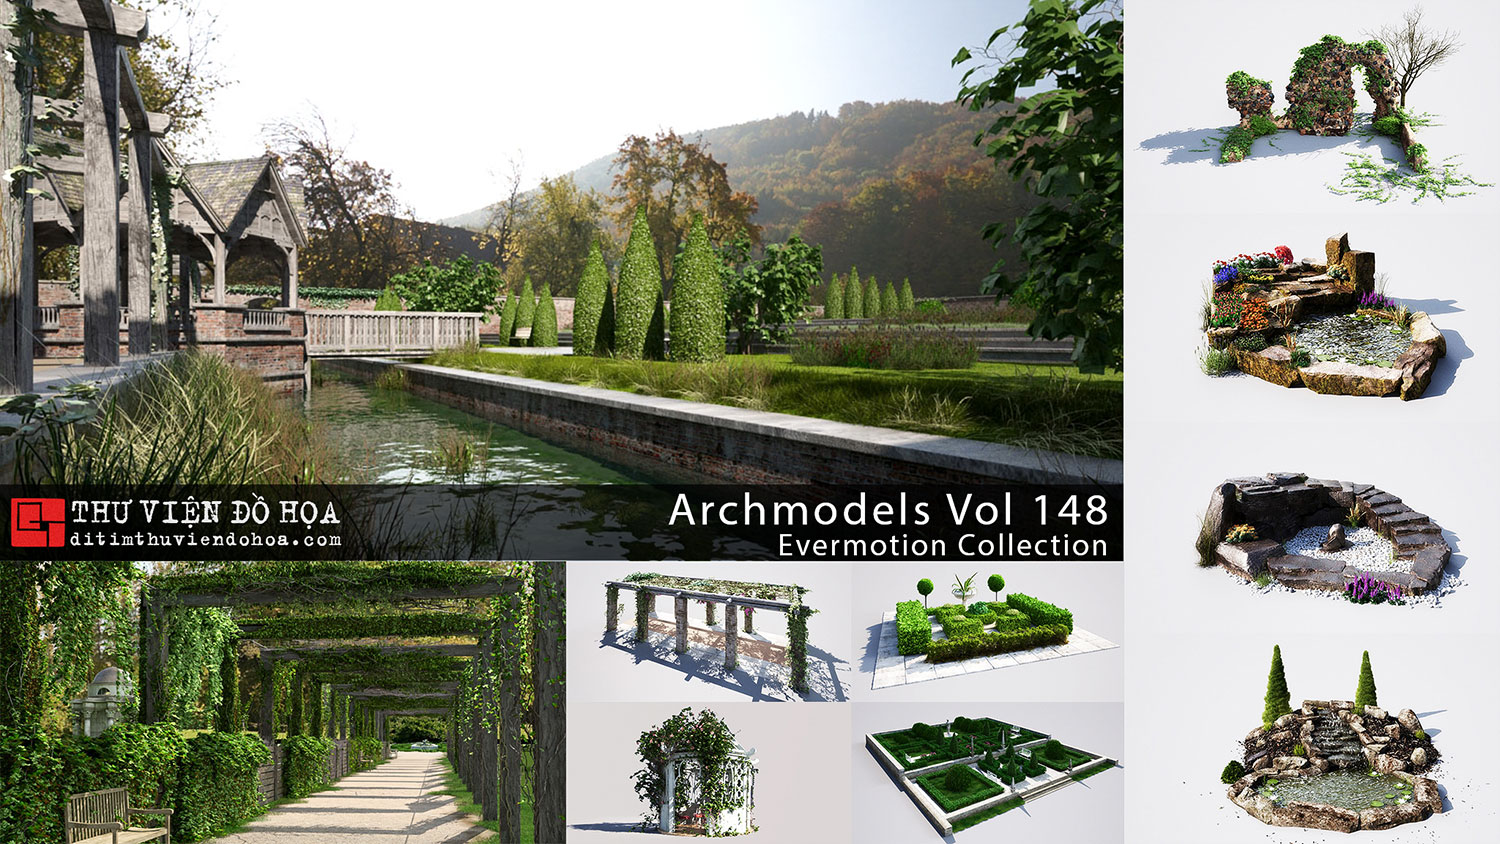 Evermotion-Archmodels-Vol-148-Ditim